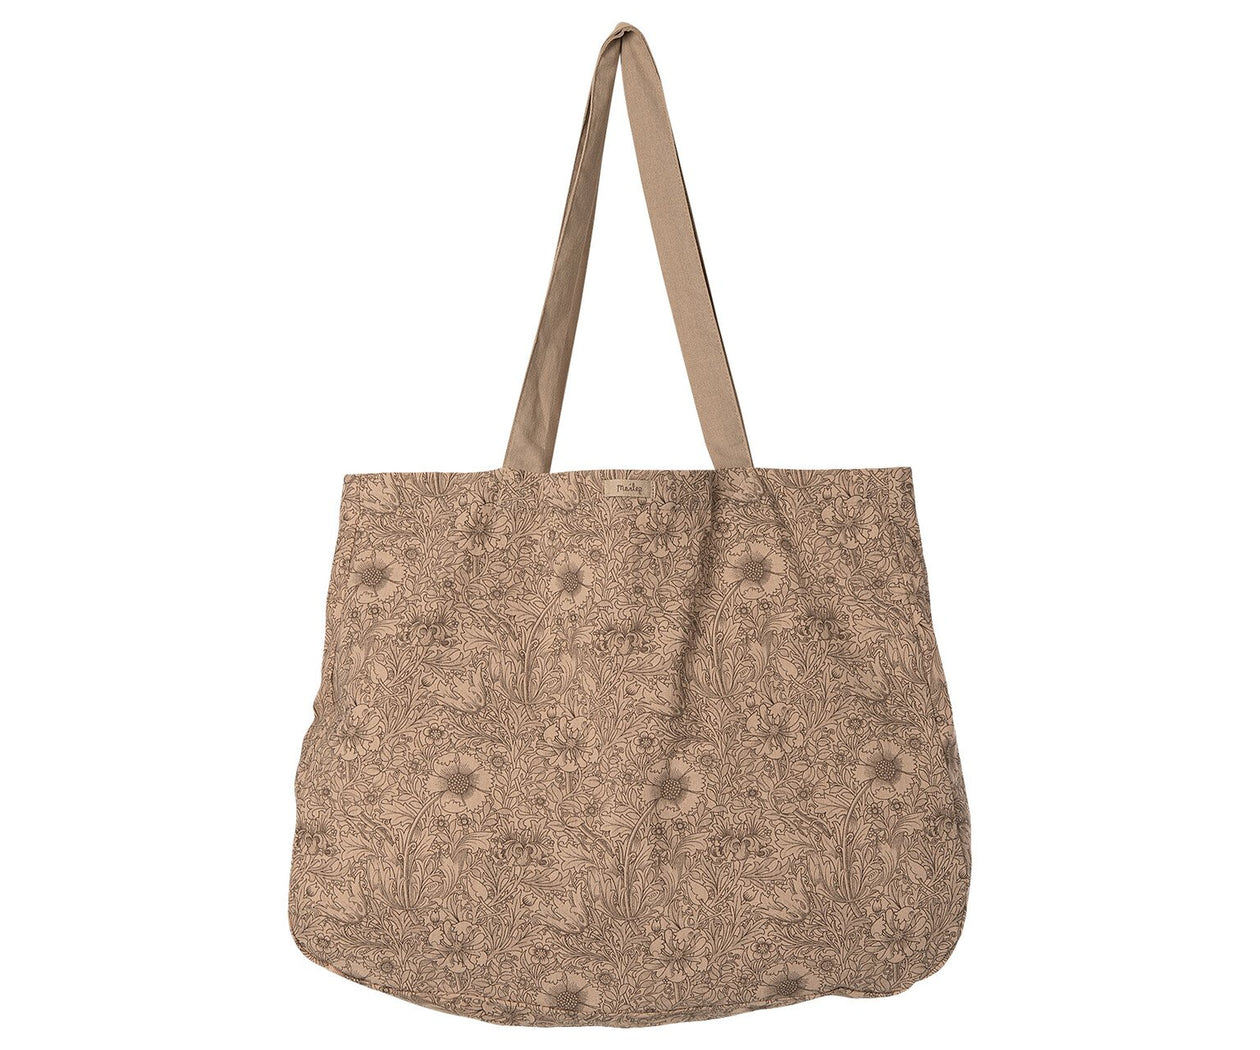 Maileg Tote Bag, Flowers - Small